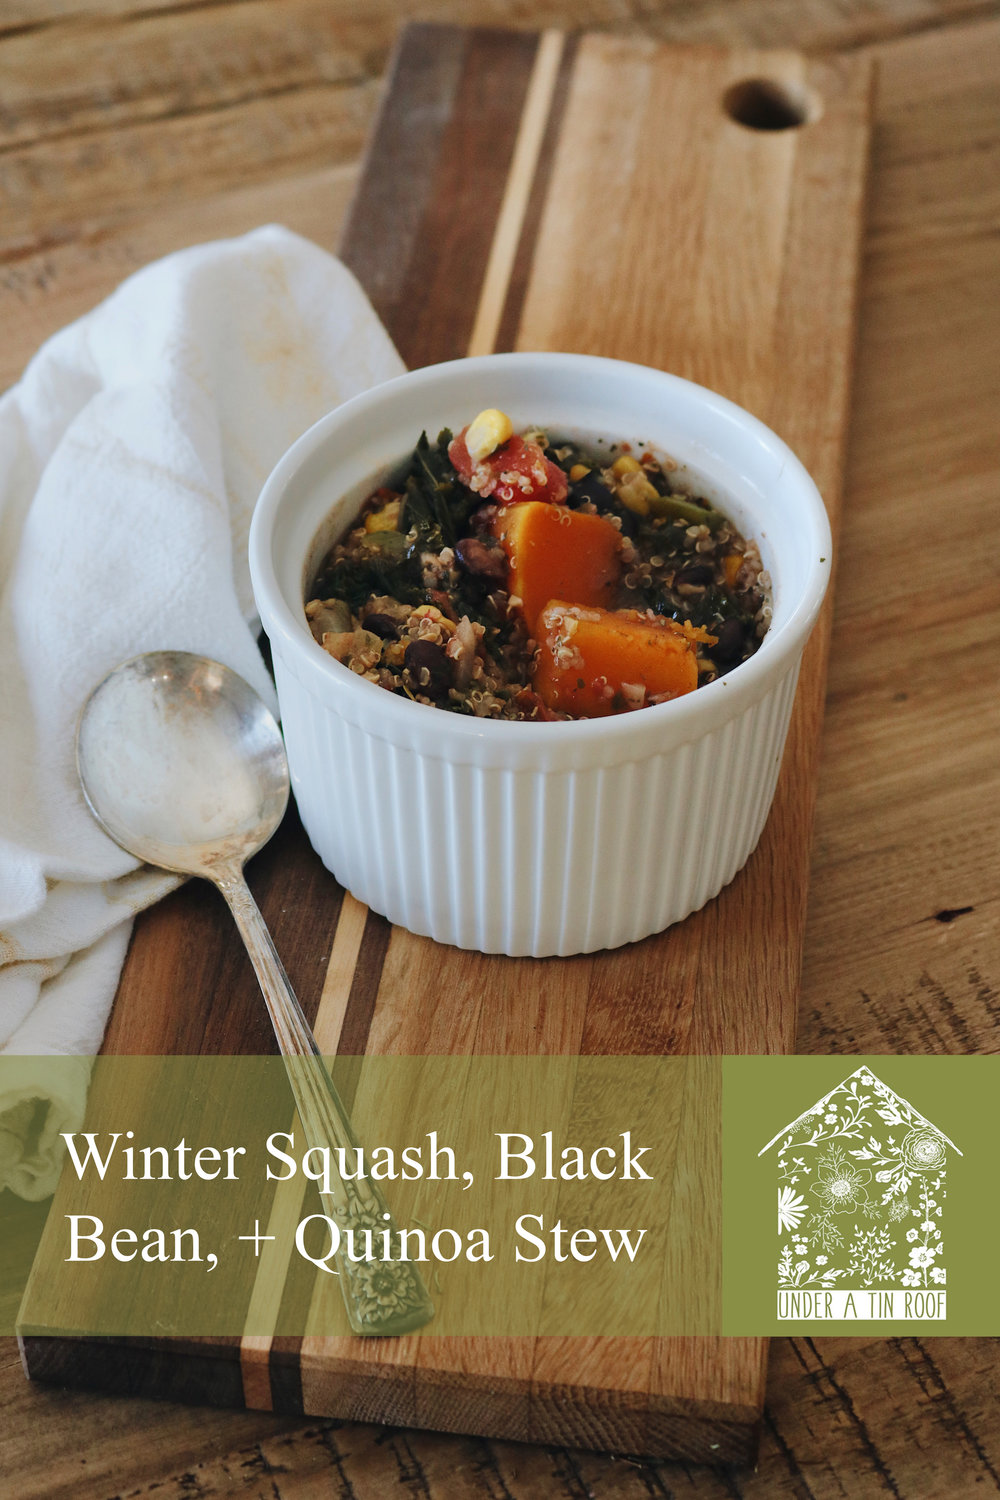 From the Garden | Winter Squash, Black Bean, and Quinoa Stew - Under A Tin Roof Blog